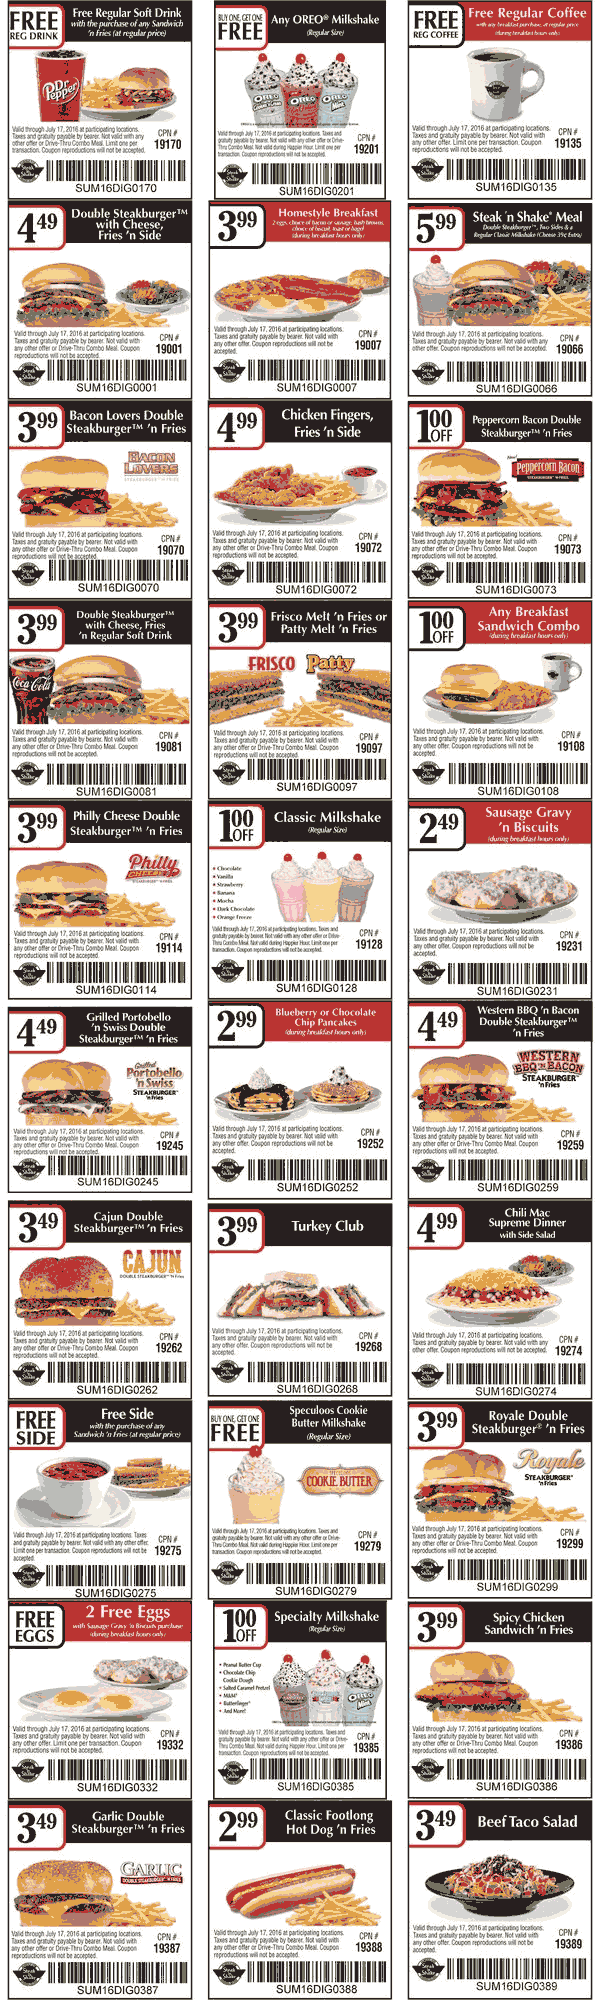 Steak n Shake Coupon March 2017 Various meal coupons for Steak n Shake restaurants